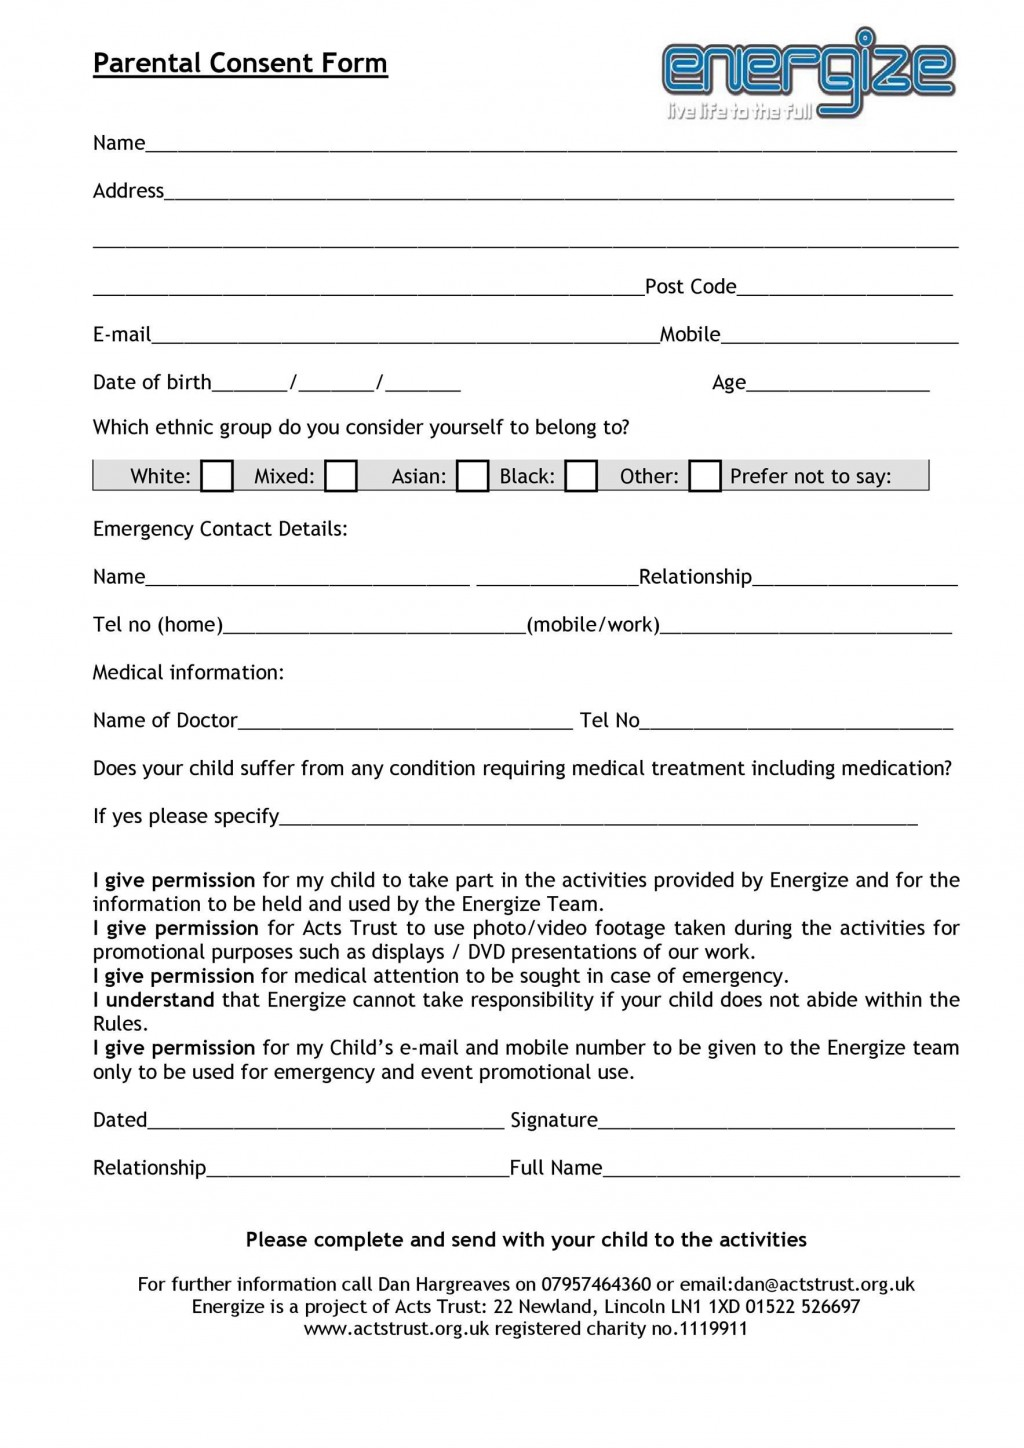 008 Phenomenal Medical Consent Form Template Example  Templates Informed Sample South Africa TreatmentLarge